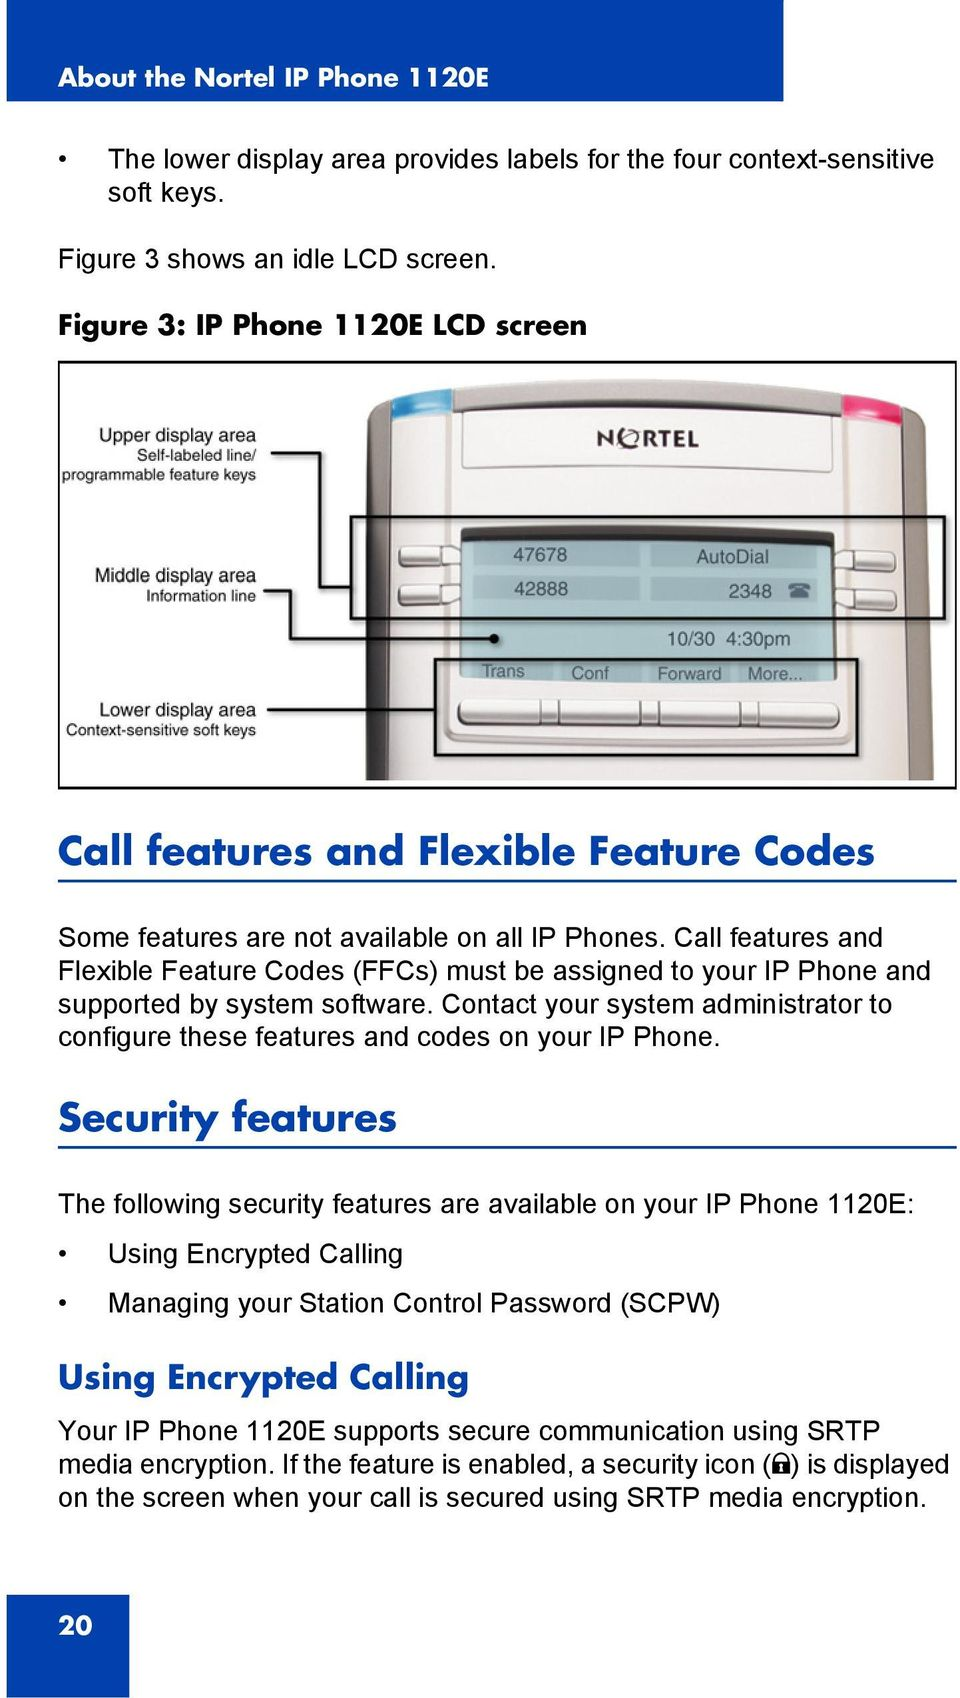 Call features and Flexible Feature Codes (FFCs) must be assigned to your IP Phone and supported by system software.